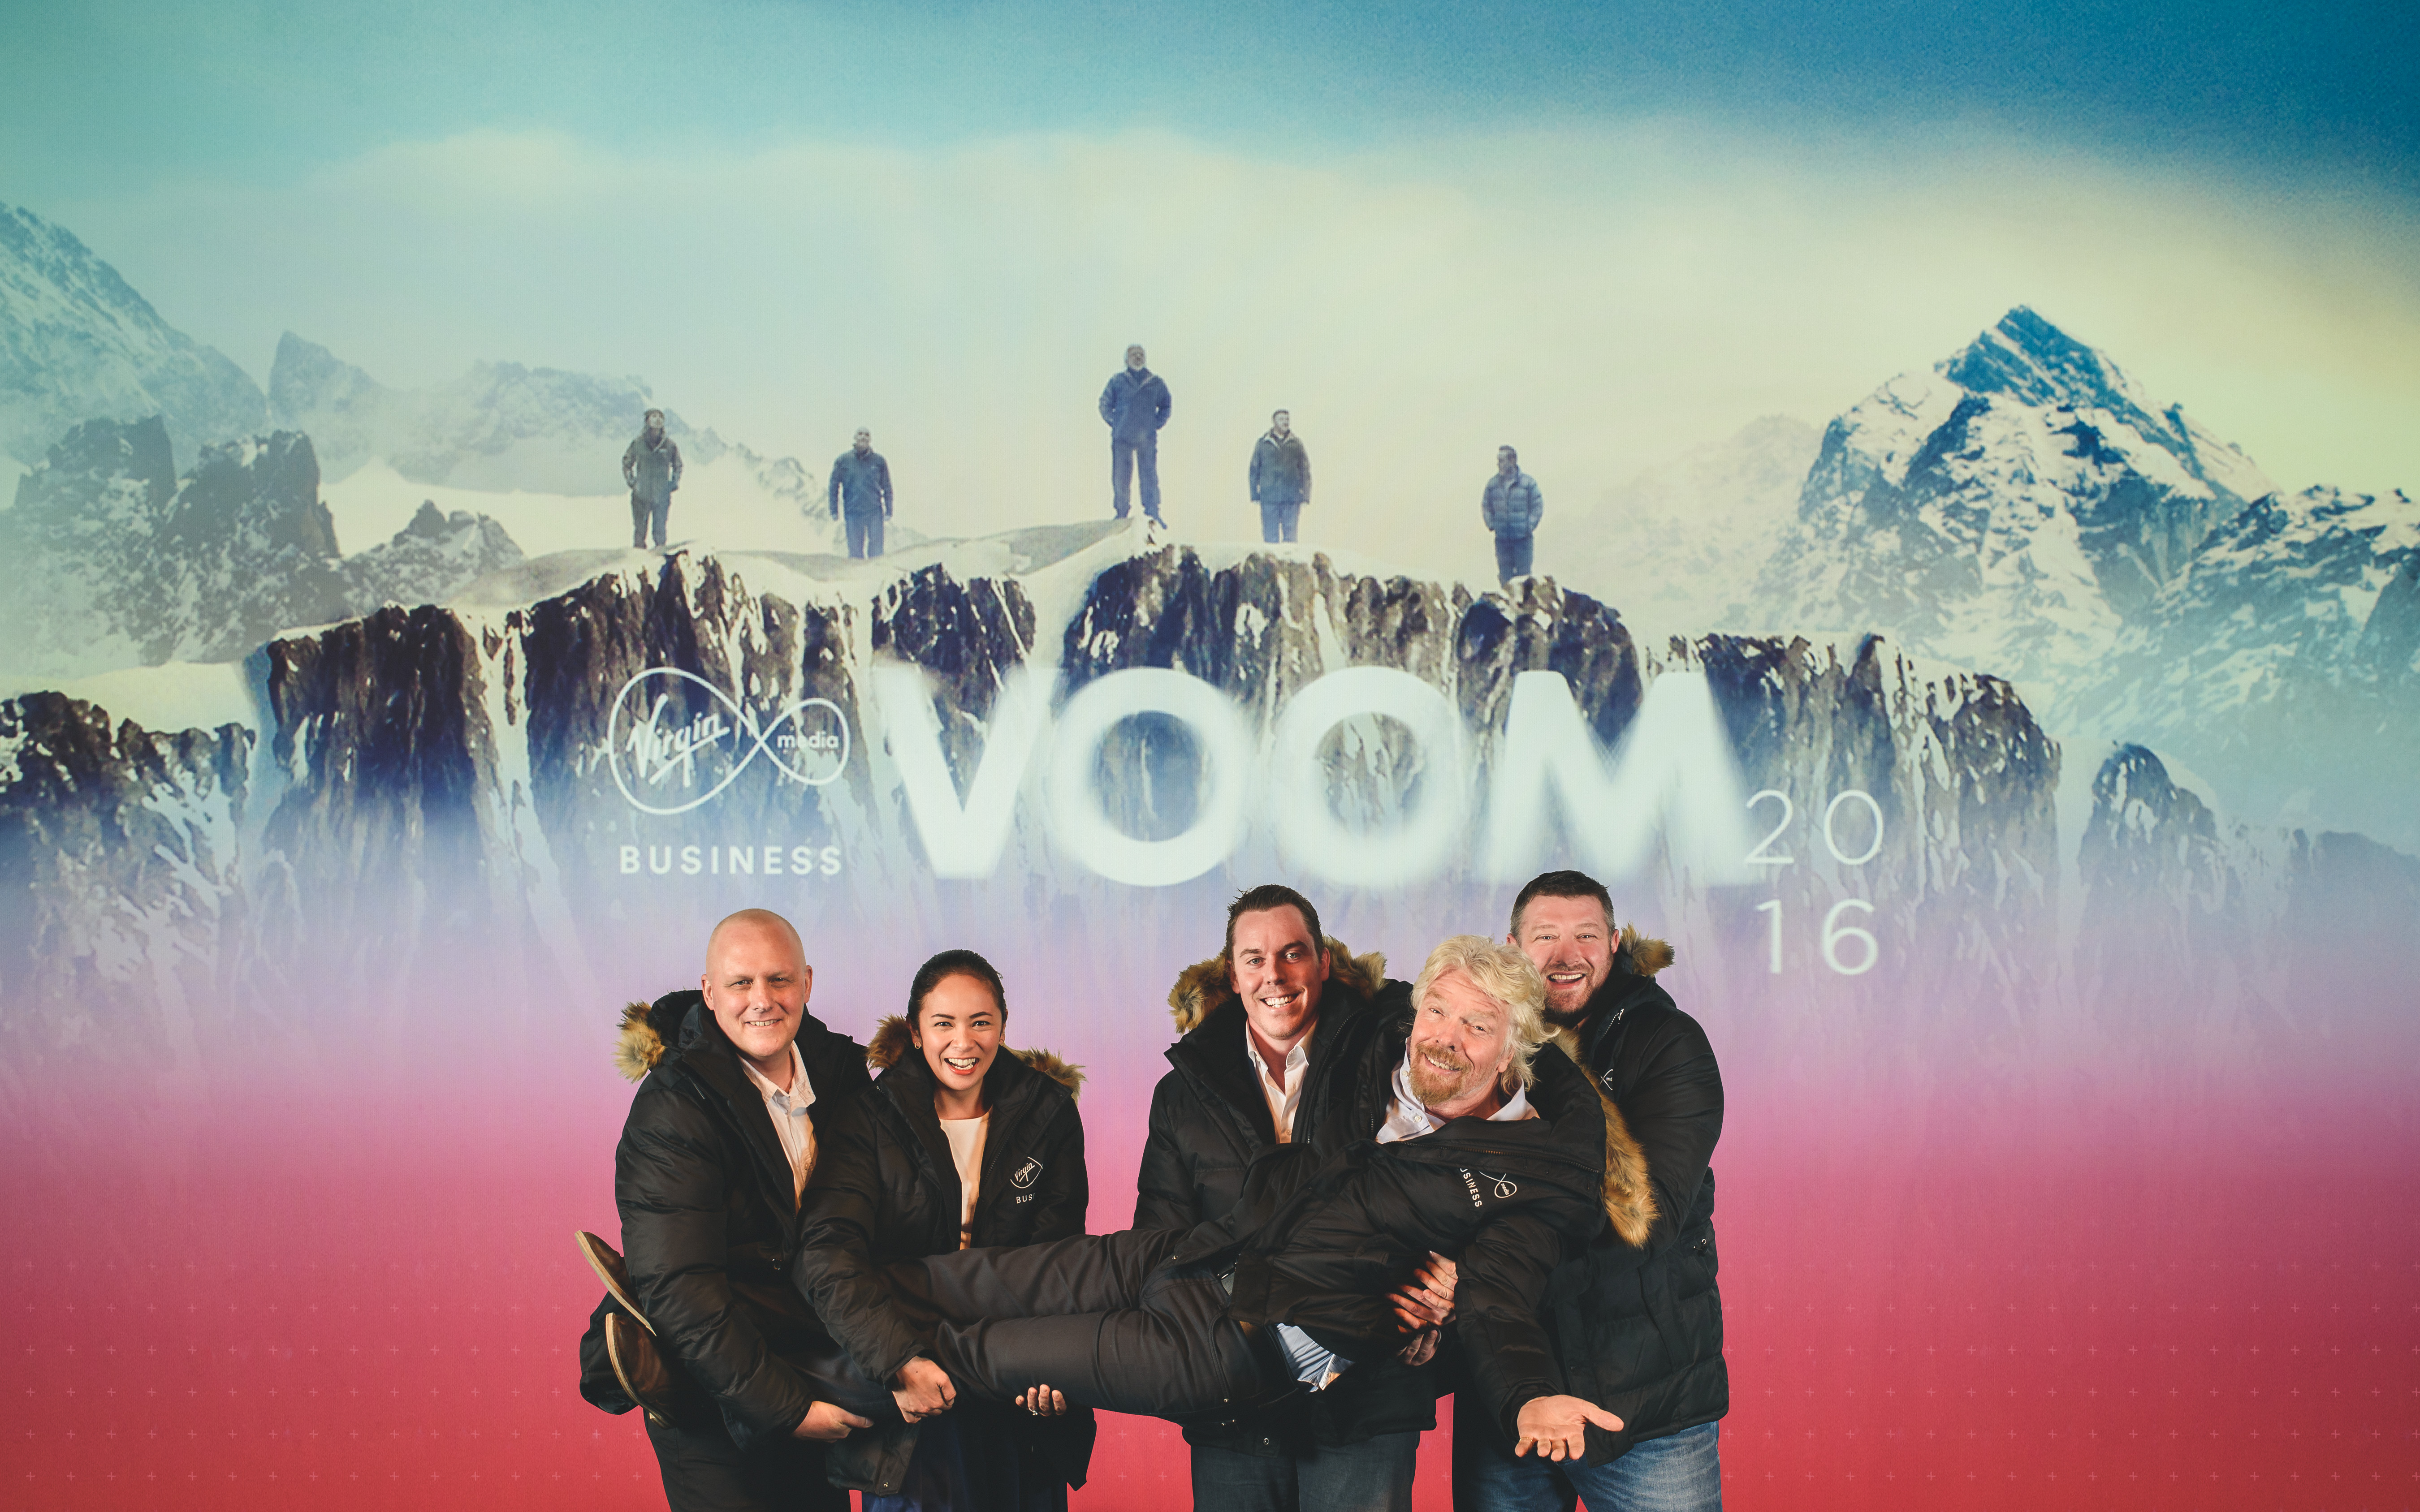 Pitch to Rich axed: Richard Branson's £1m business challenge reborn as VOOM 2016